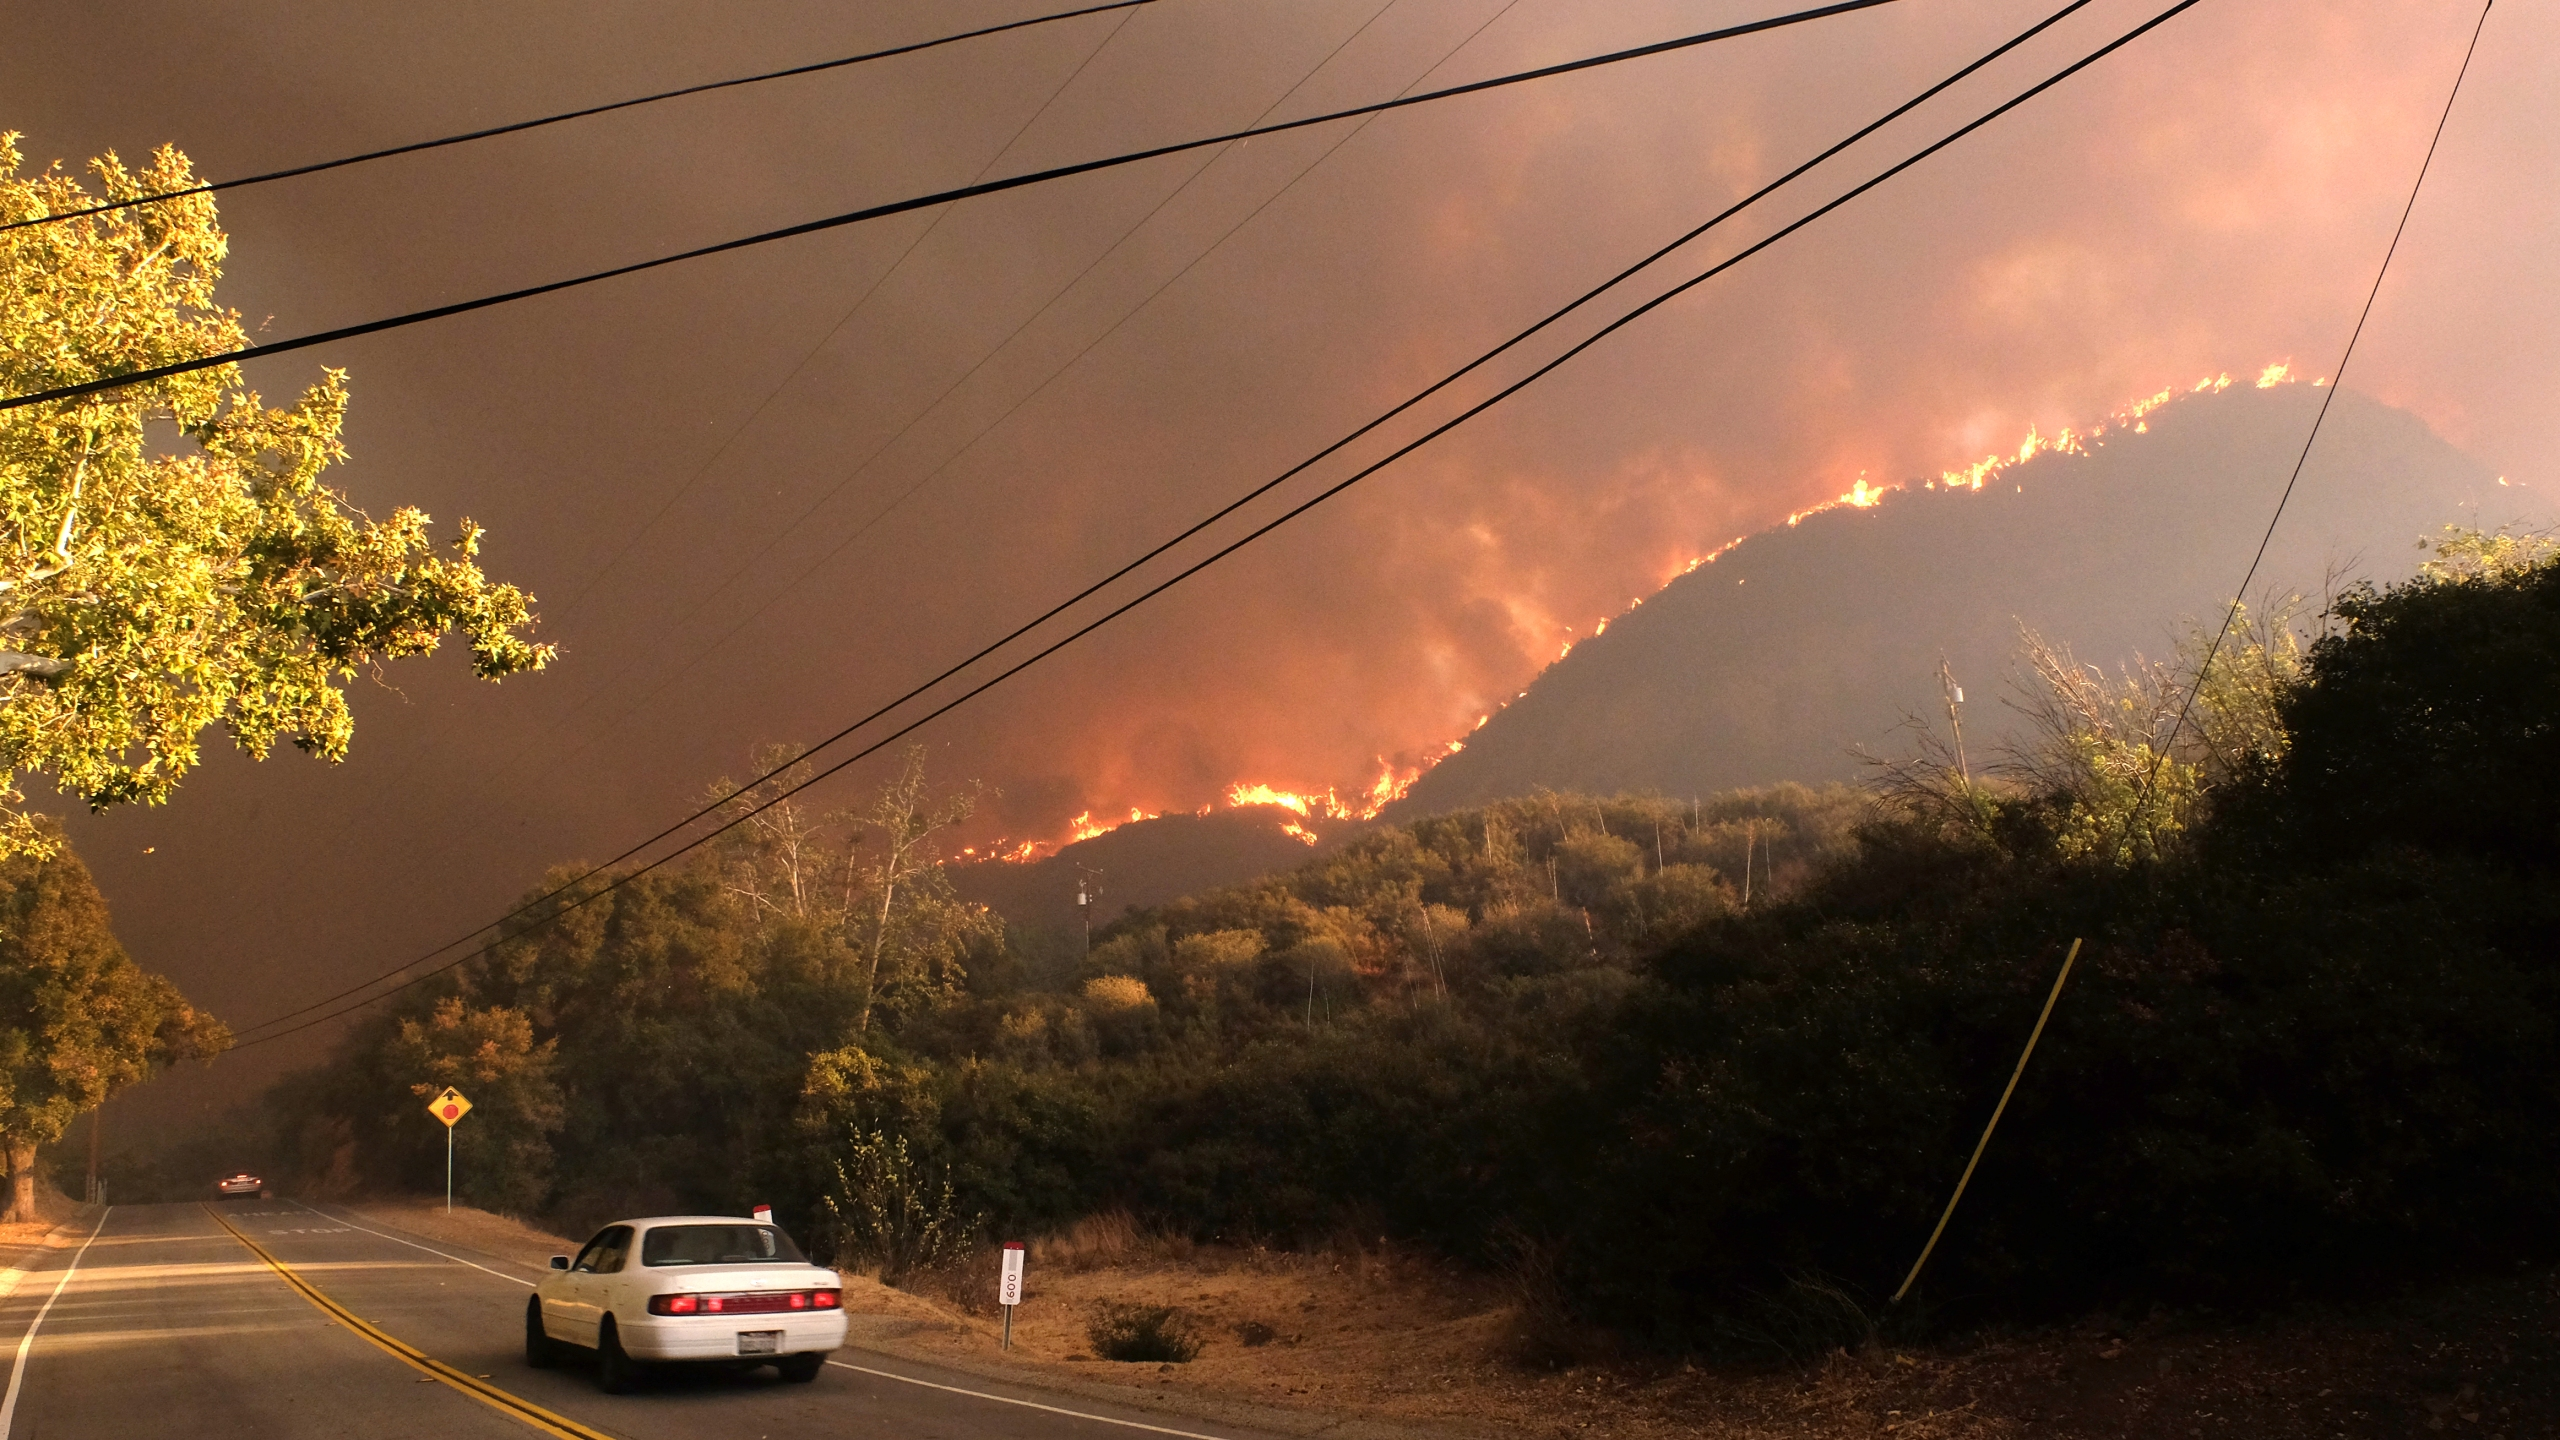 The Woolsey Fire burns along the ridgeline off of Cornell Road near Paramount Ranch on the morning of November 9, 2018 in Agoura Hills, California. (Credit: Matthew Simmons/Getty Images)